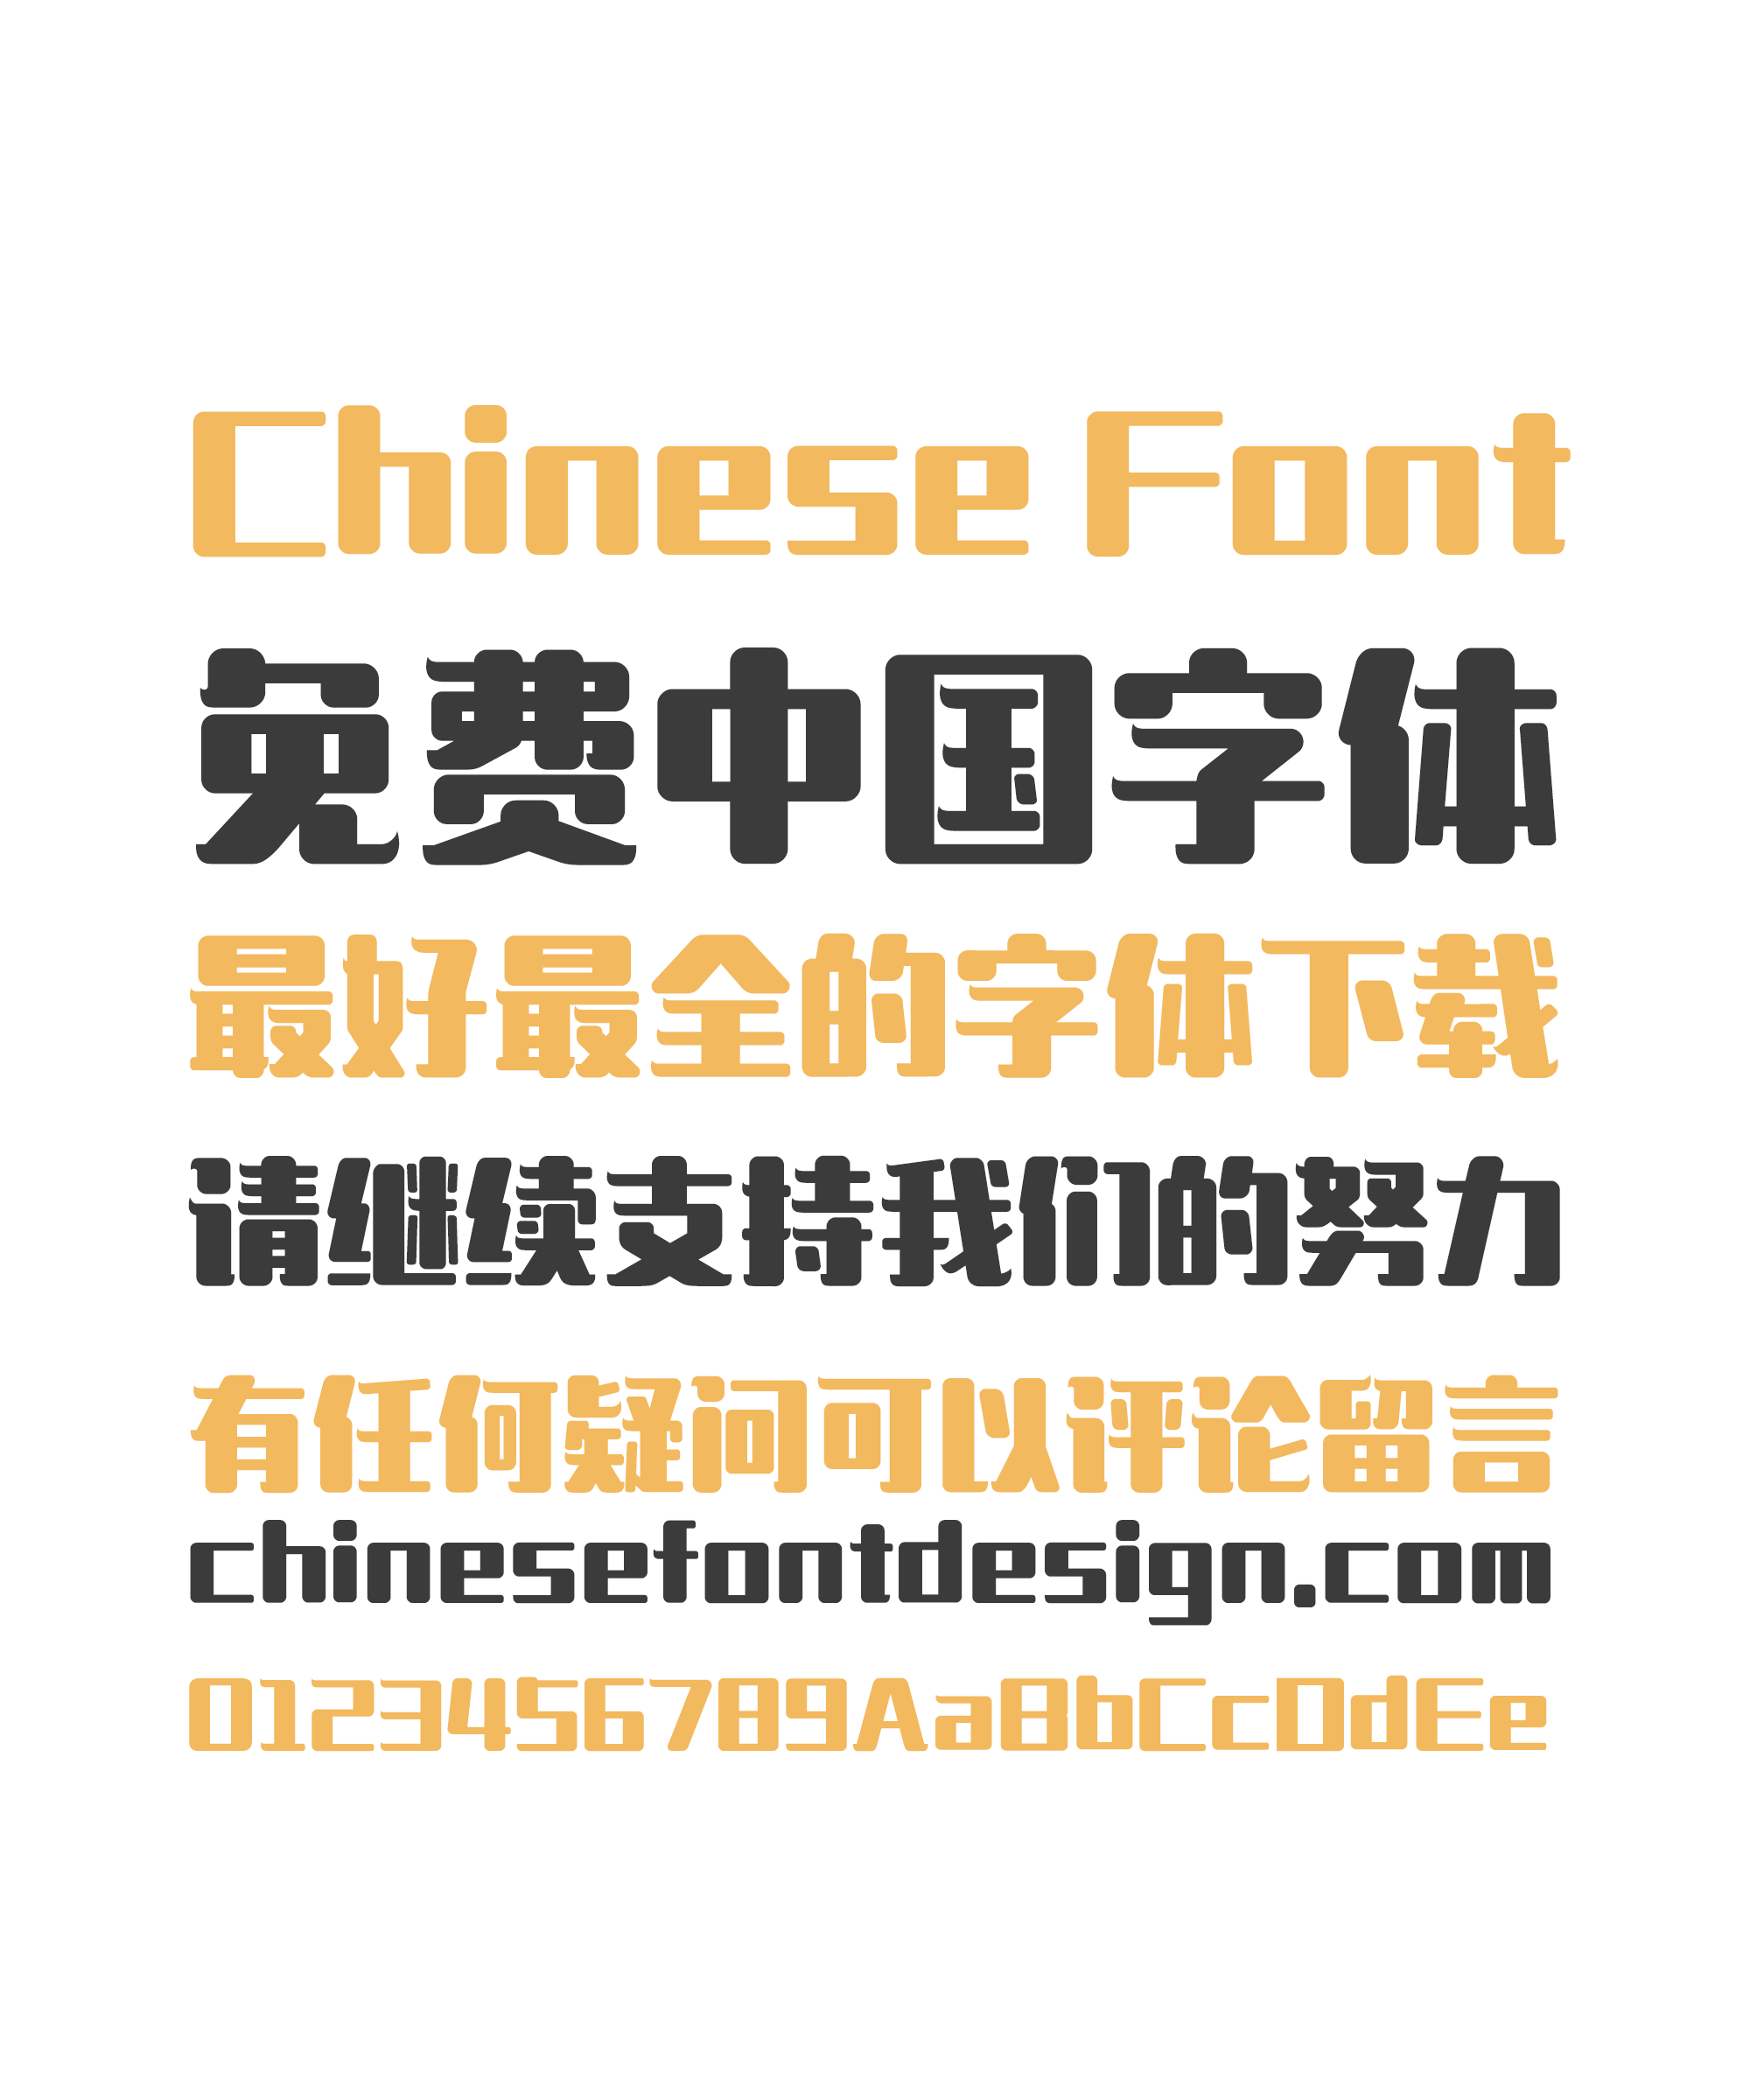 Zao Zi Gong Fang (Make Font) Graceful Bearing Bold Figure Chinese Font -Simplified Chinese Fonts